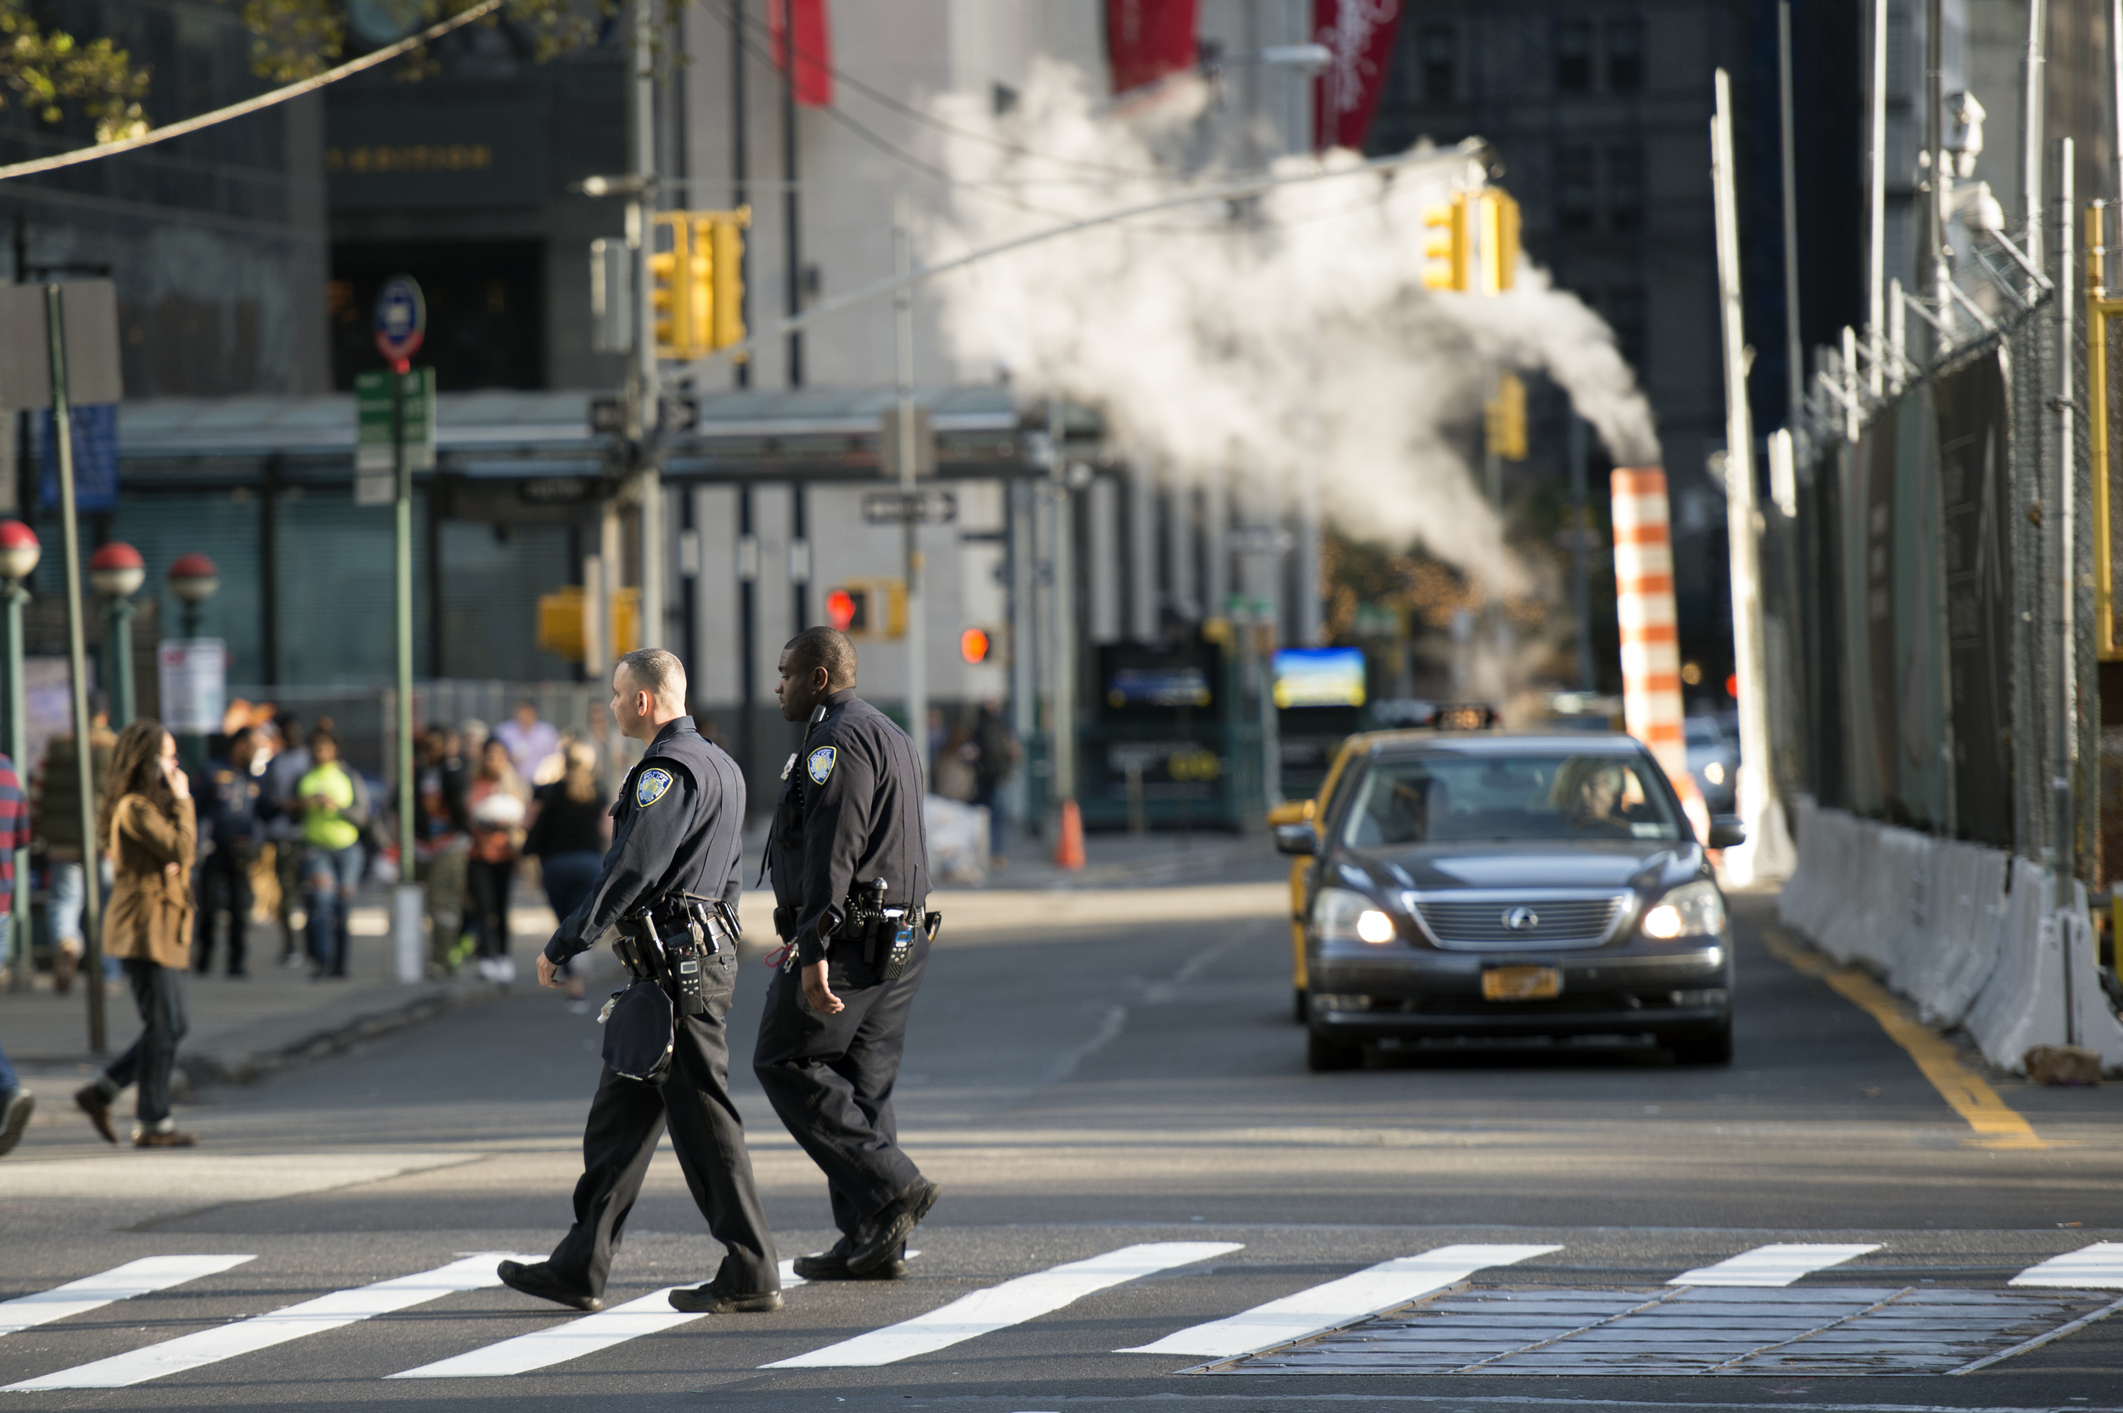 Two police officers are crossing the street near the World Trade Center 'Ground Zero' in Manhattan, New York. Blurred skyscrapers and steam coming out of the manholes in the background.